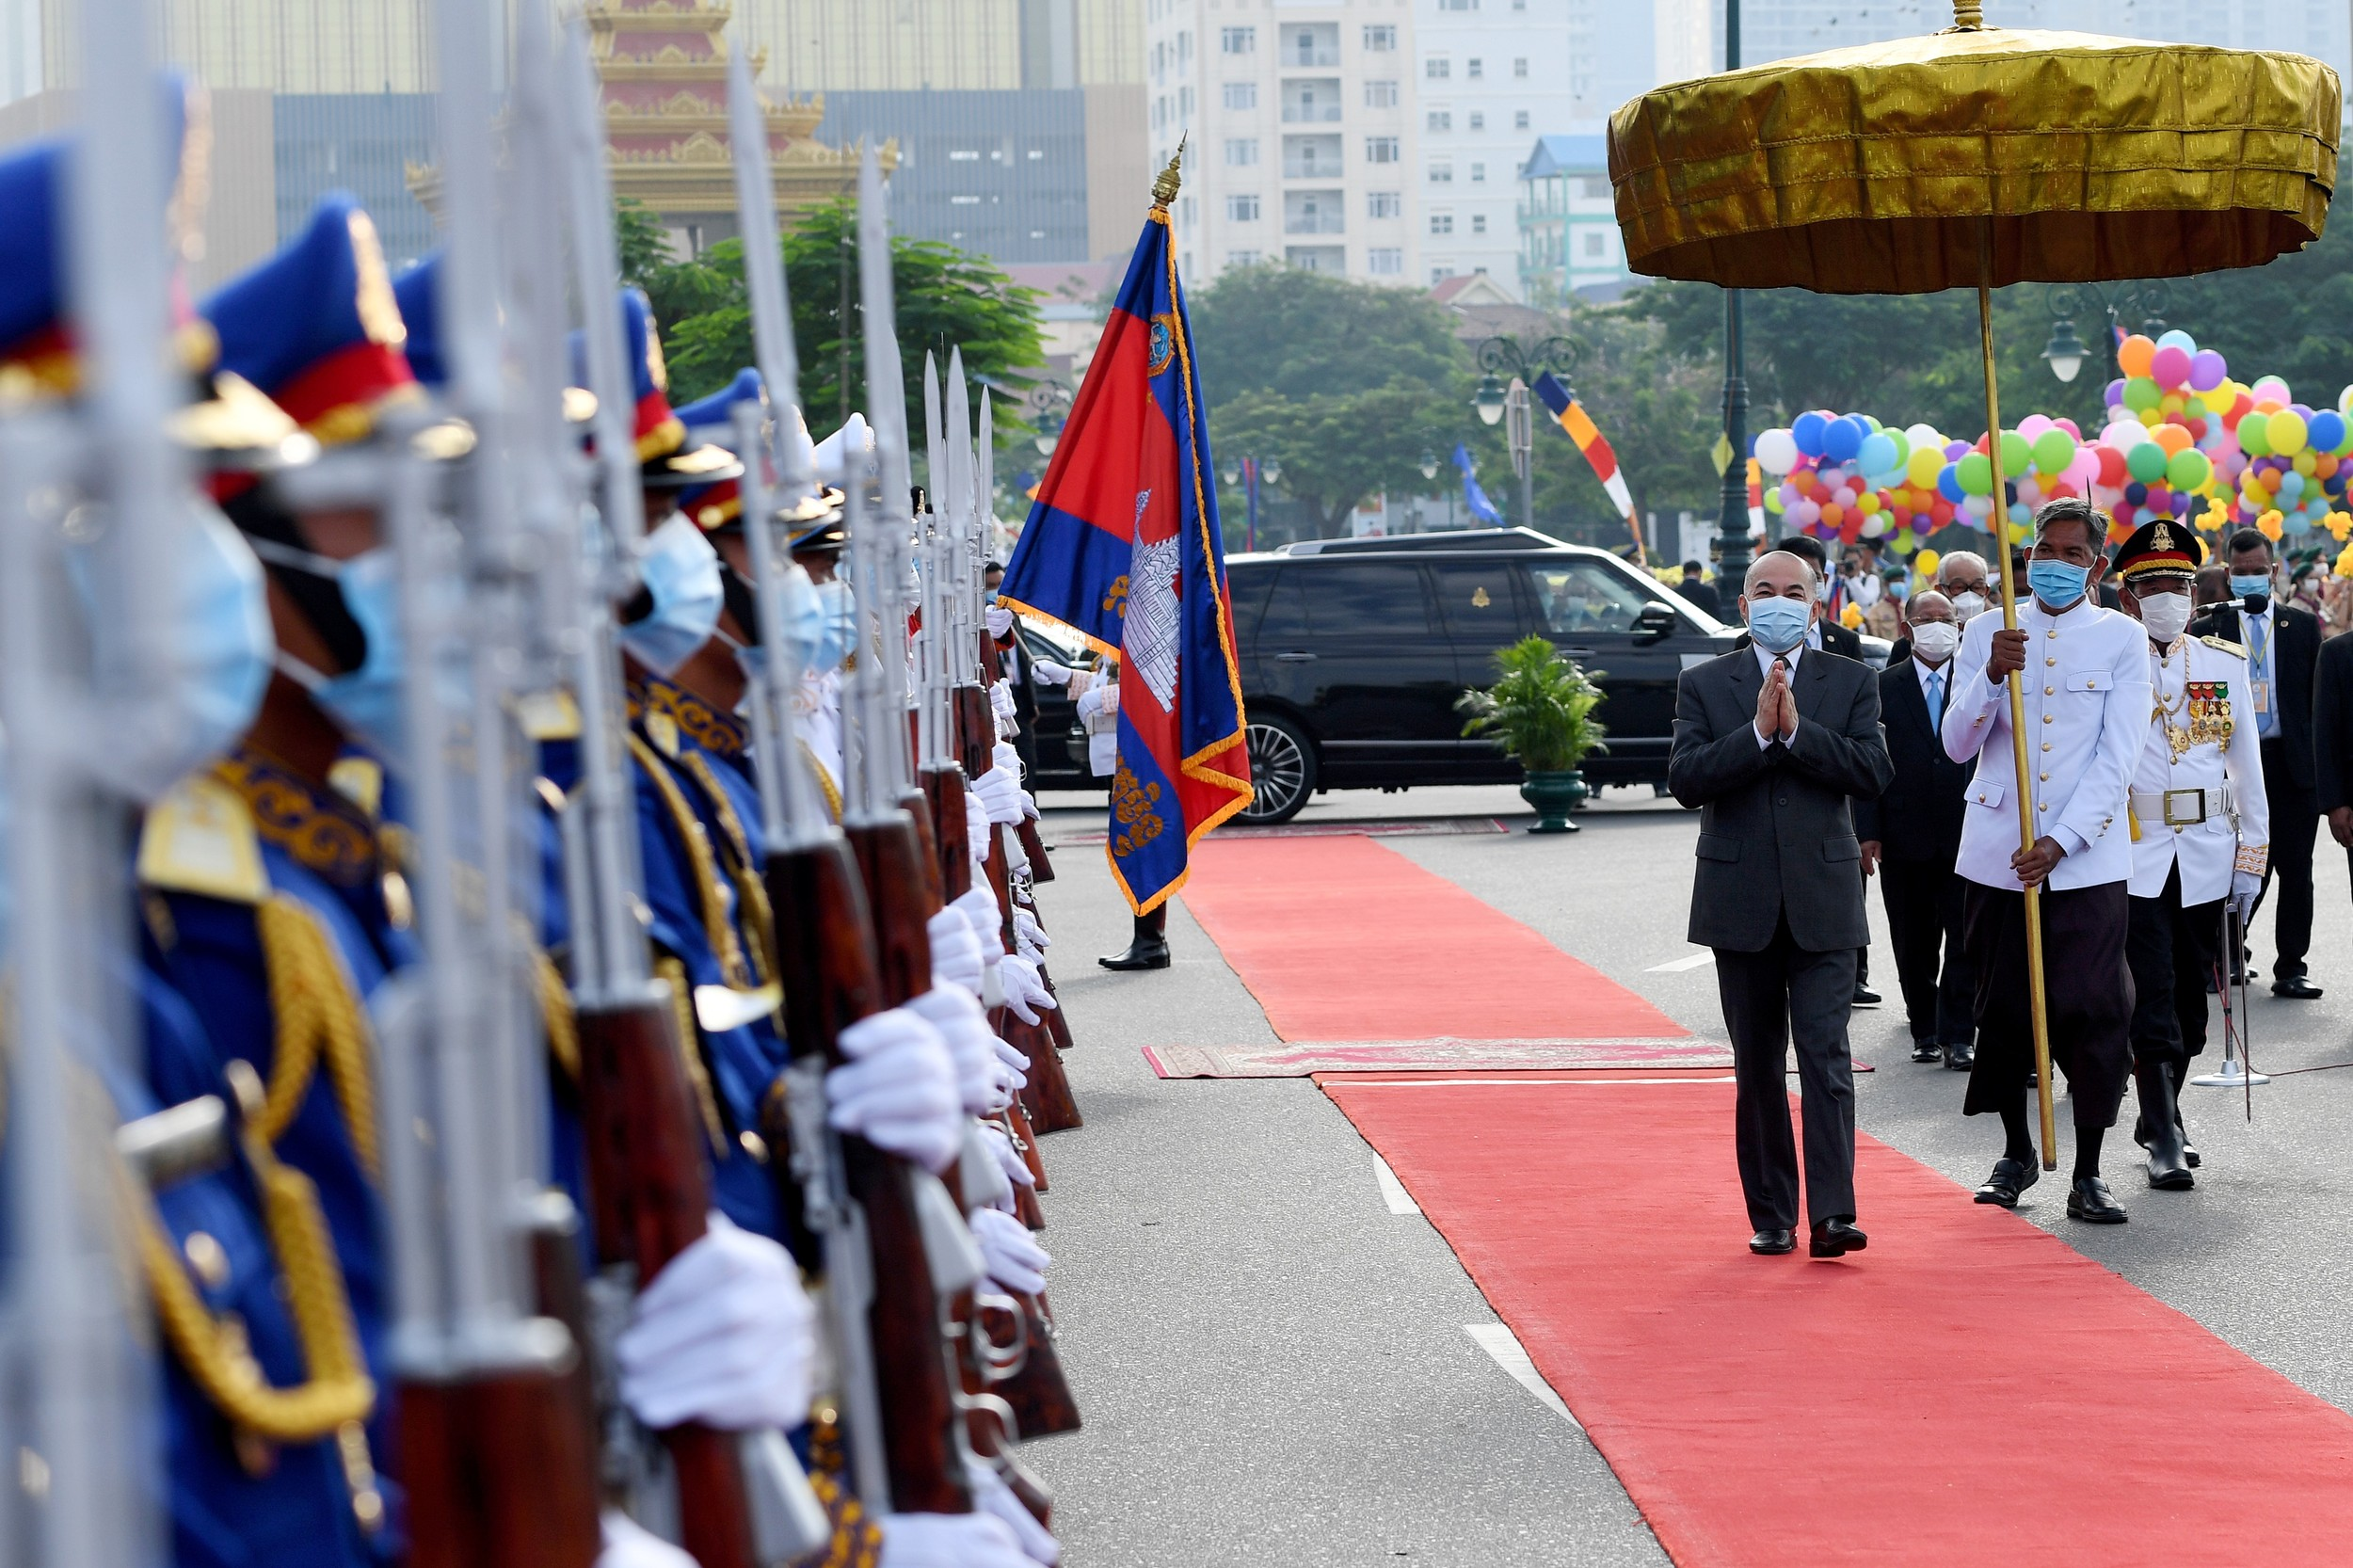 Cambodian King Norodom Sihamoni (R) walks past honor guards during a ceremony marking Cambodia's Independence Day in Phnom Penh, Nov. 9, 2020.